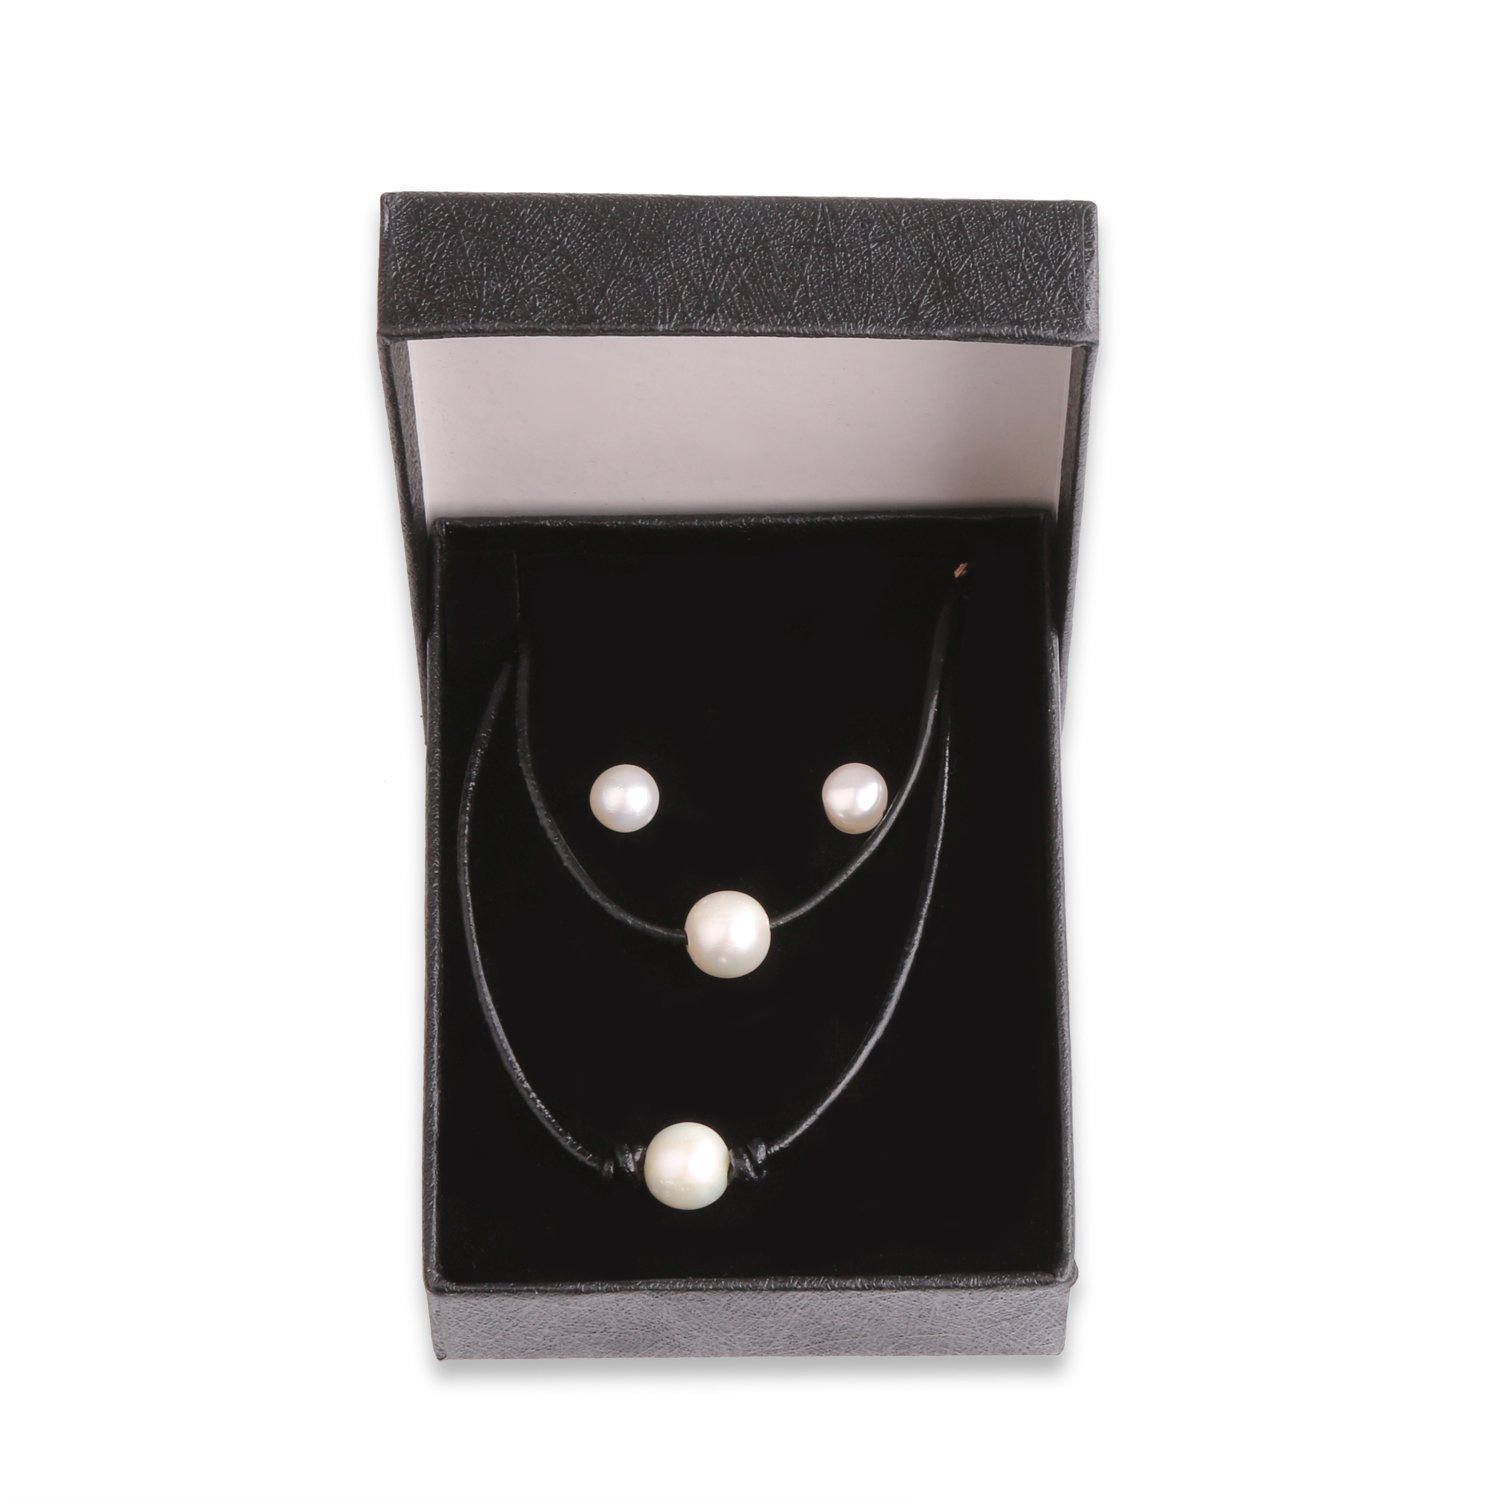 USA Annabel 3PCS Pearl Choker Leather Handmade Necklace for Women Jewelry Girls, Package Including Necklace, Bracelet and Earrings by USA Annabel (Image #7)